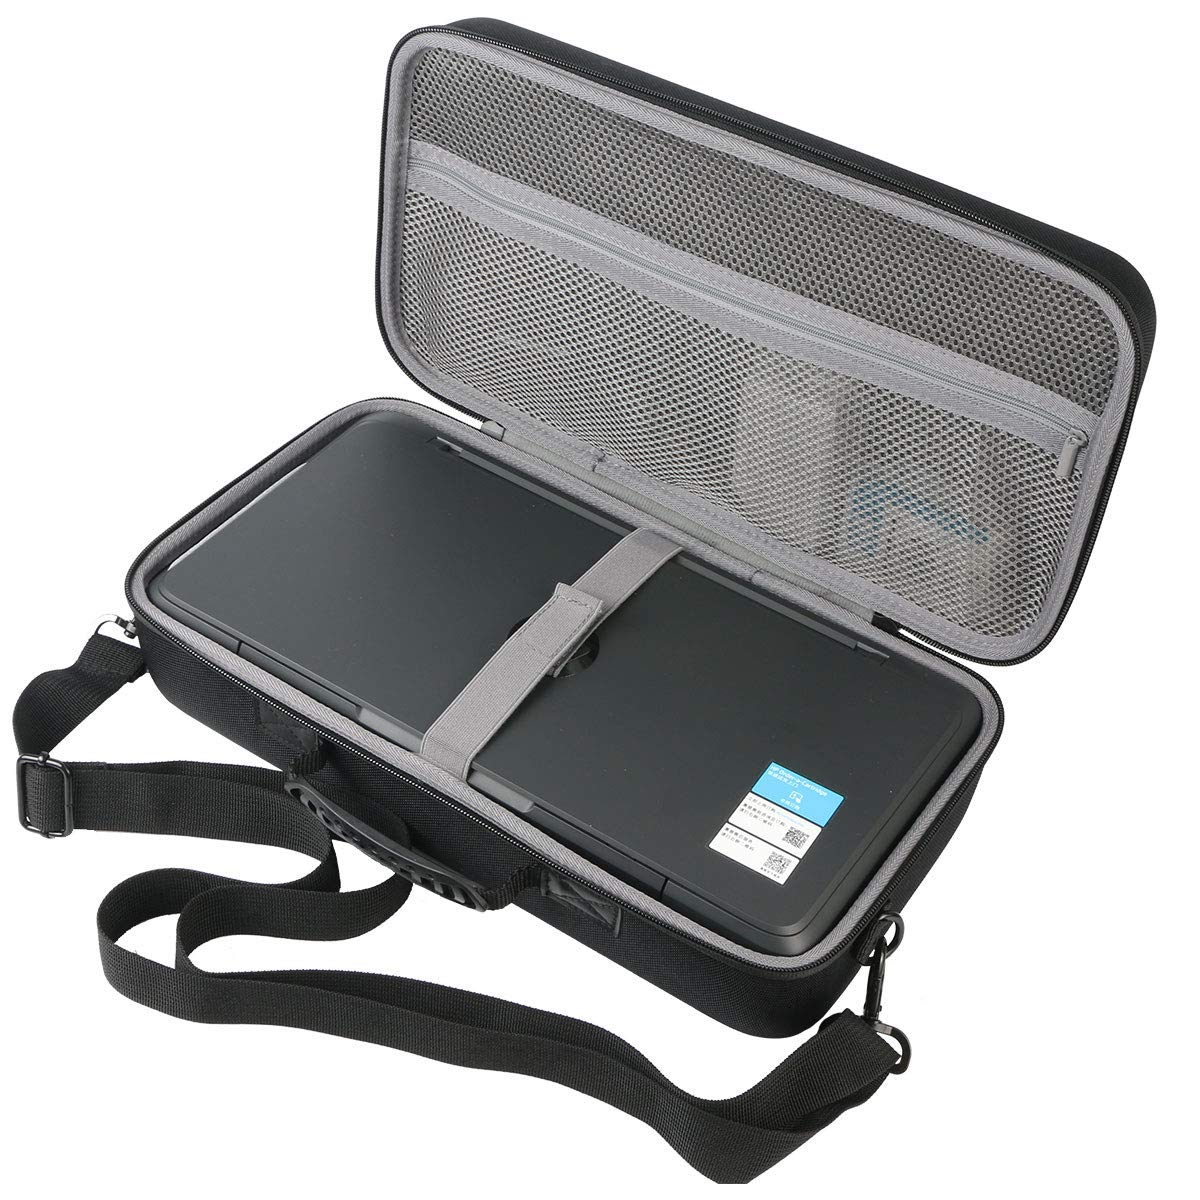 co2crea Hard Travel Case for HP OfficeJet 200 Portable Printer with Wireless Mobile Printing (CZ993A) by Co2Crea